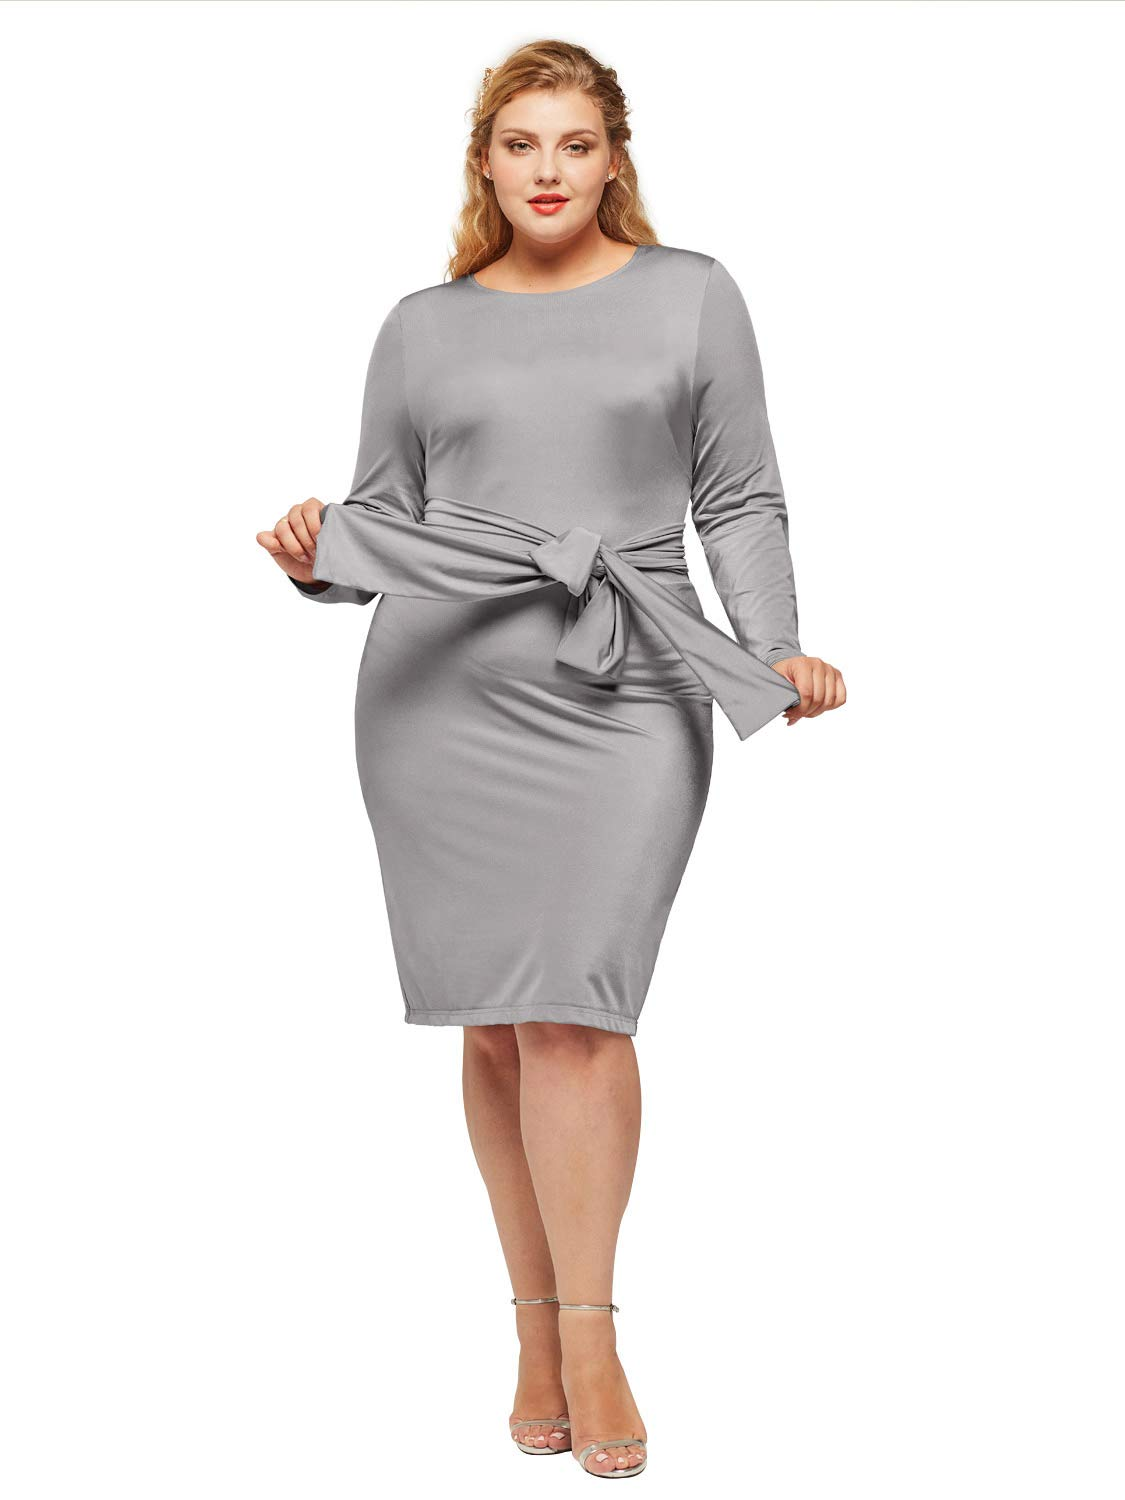 Alicepub Women\'s Scoop Neck Plus Size Dress Long Sleeve Sheath Casual Work  Party Dresses, Platinum, US16